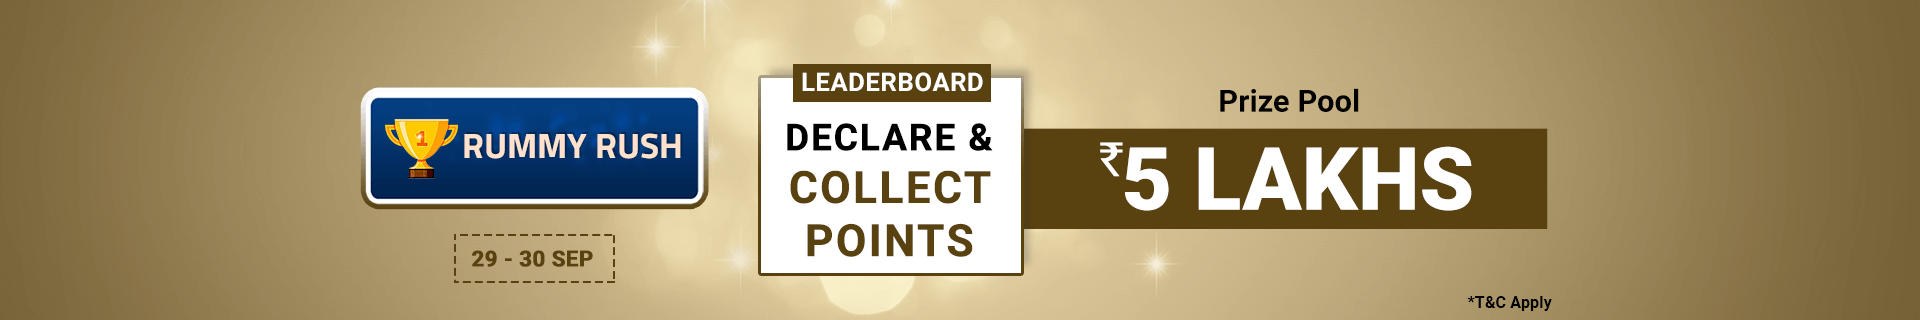 Rummy Leaderboard Contest